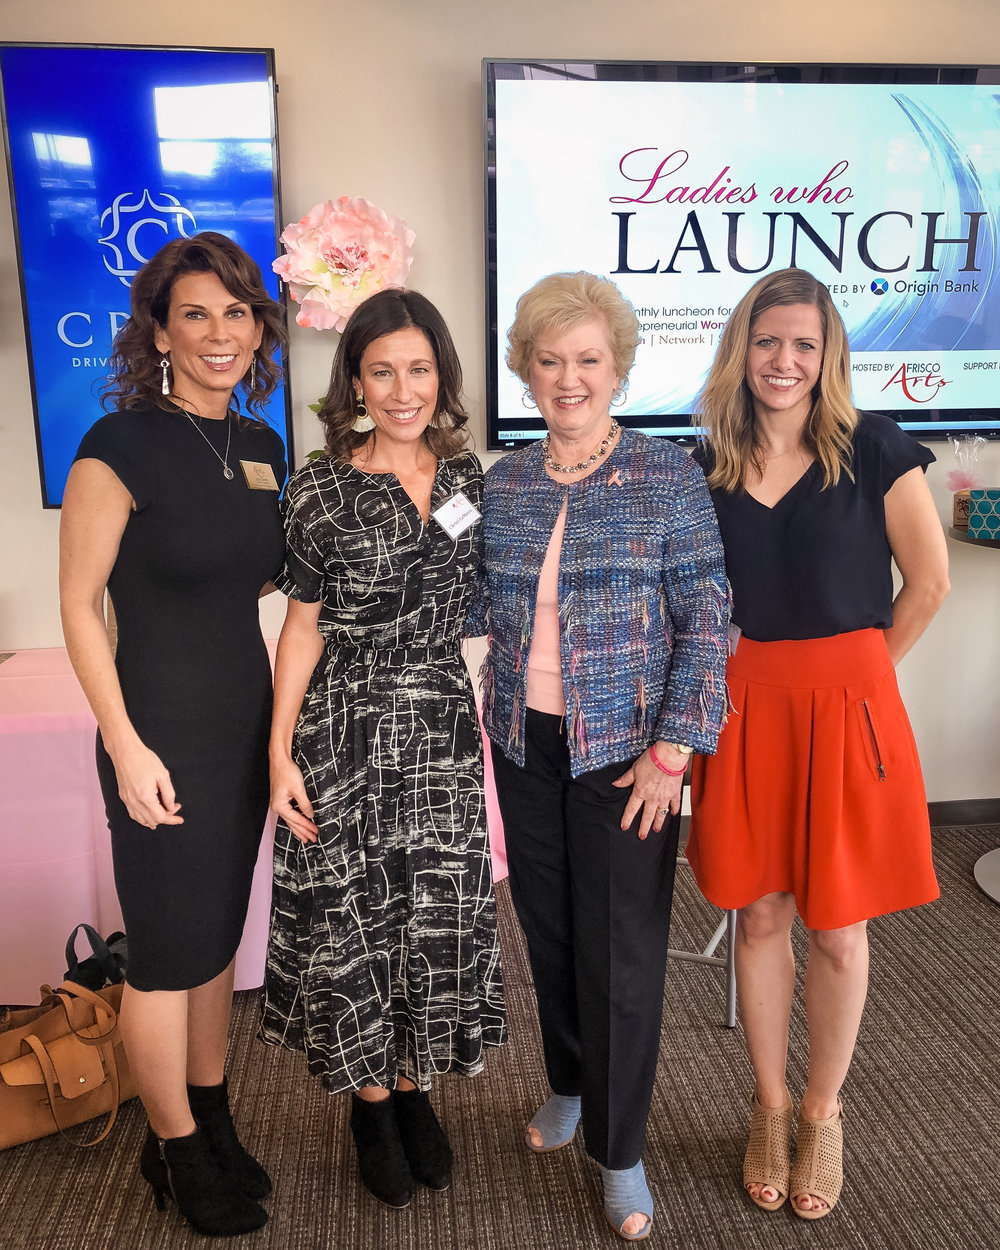 Frisco Arts October Ladies Who Launch luncheon.  Shown left to right: Julie Shipp, Gallery Director at Collin College; Christi LaMarca of Tilly & Fran; Janelle Hail, Founder and CEO of National Breast Cancer Foundation; and me.